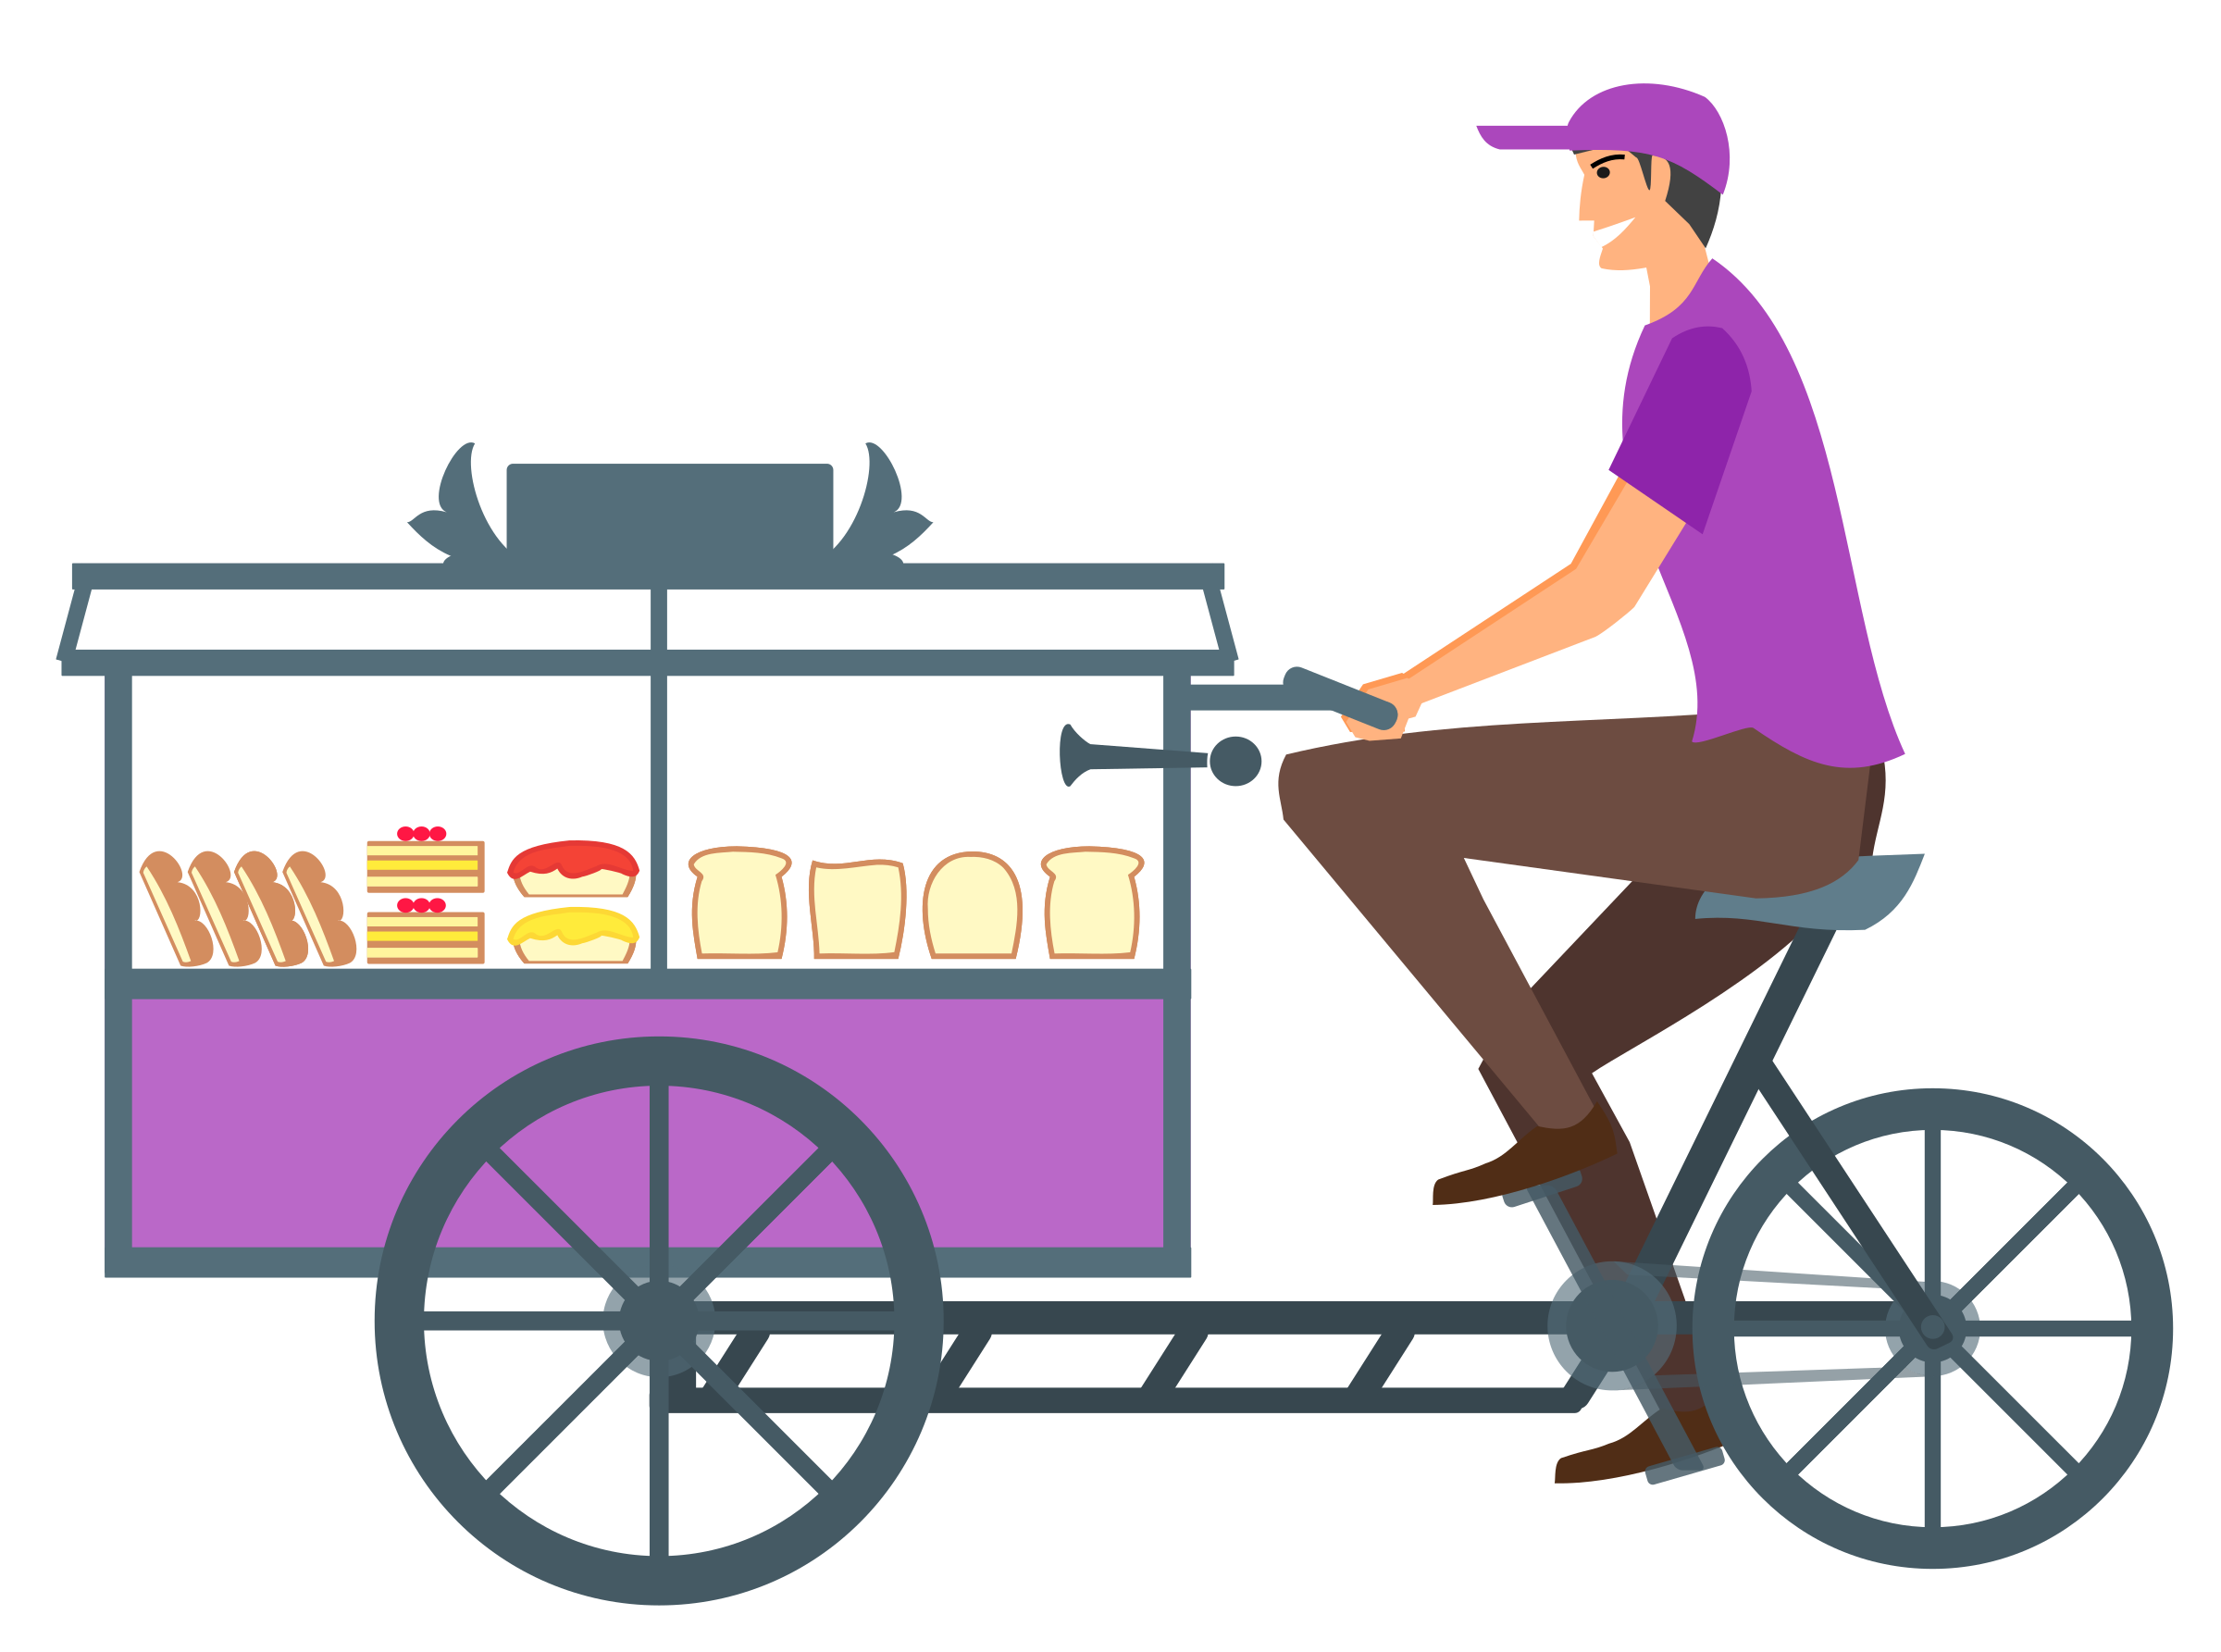 Bread Seller with Cycle Cart by Vexagrafi